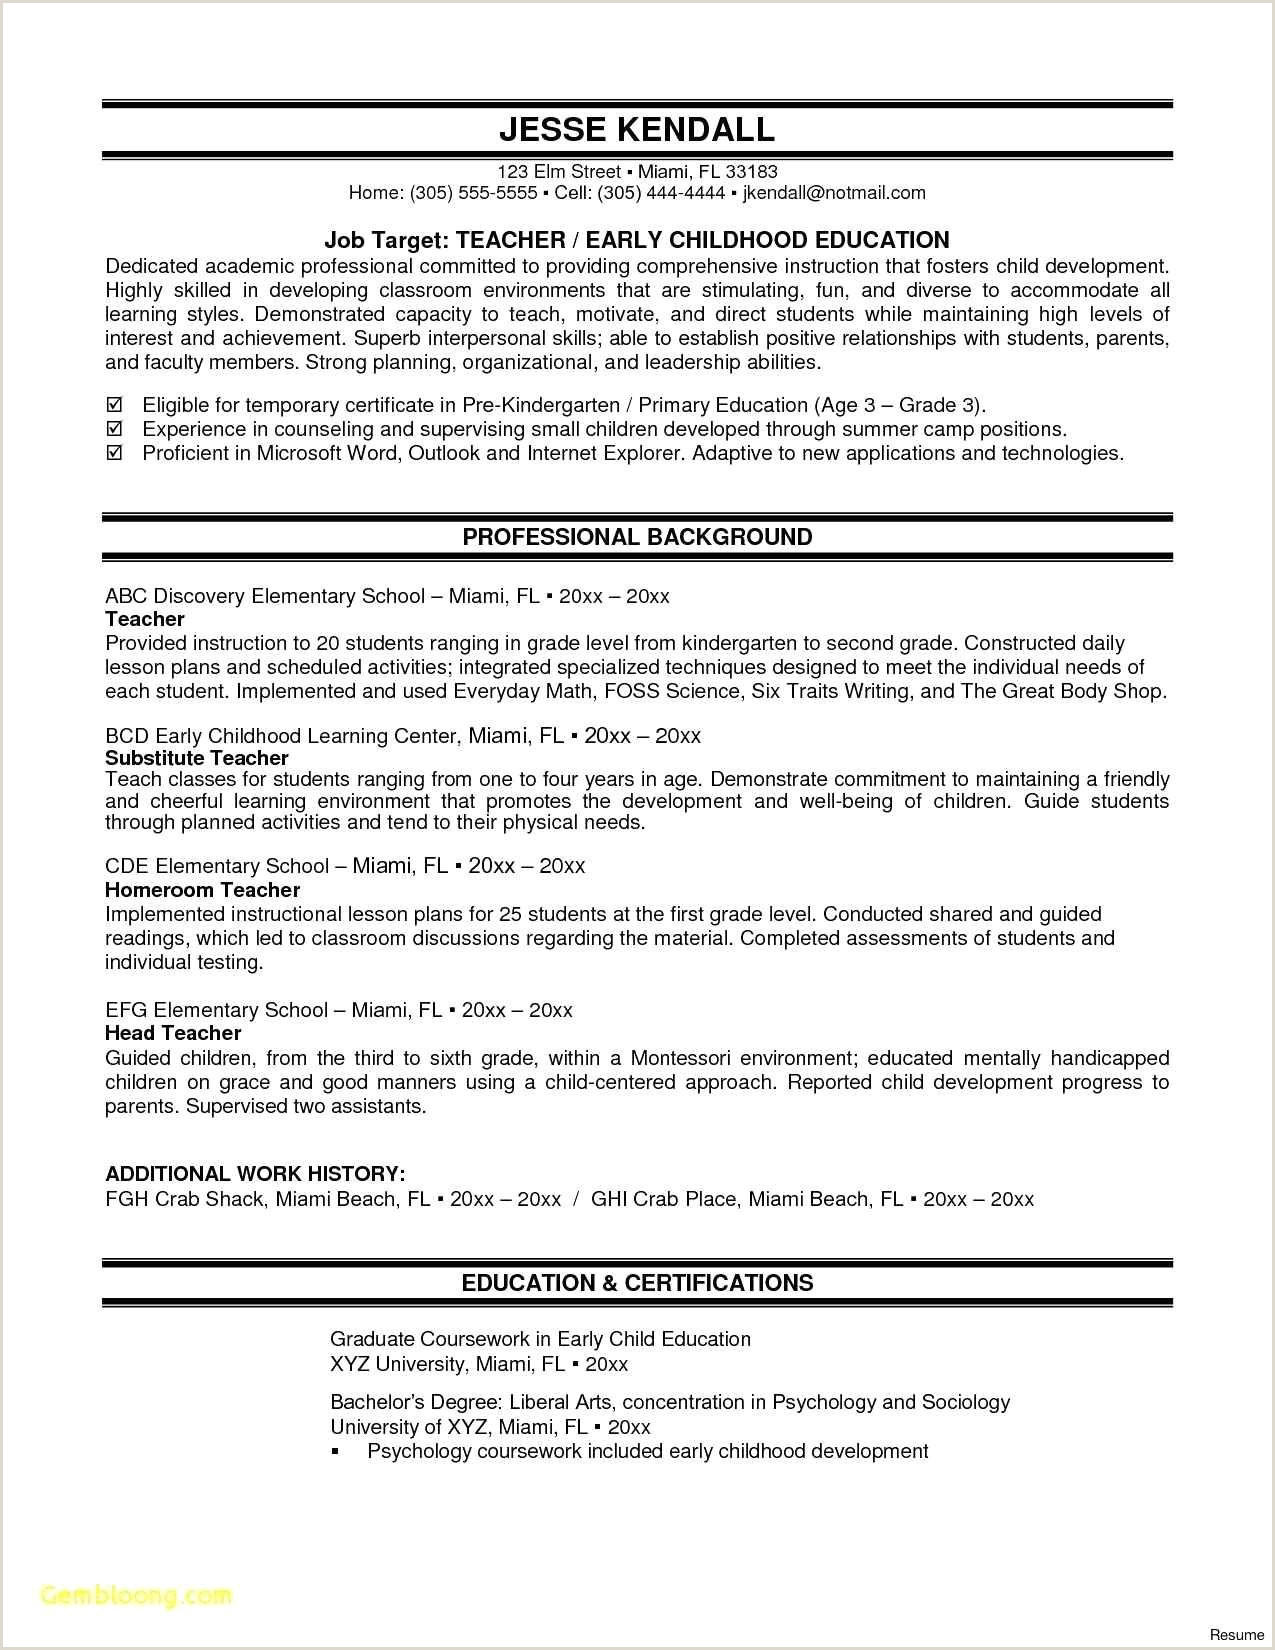 Resume Format For Job Ms Word Microsoft Word Free Resume Templates